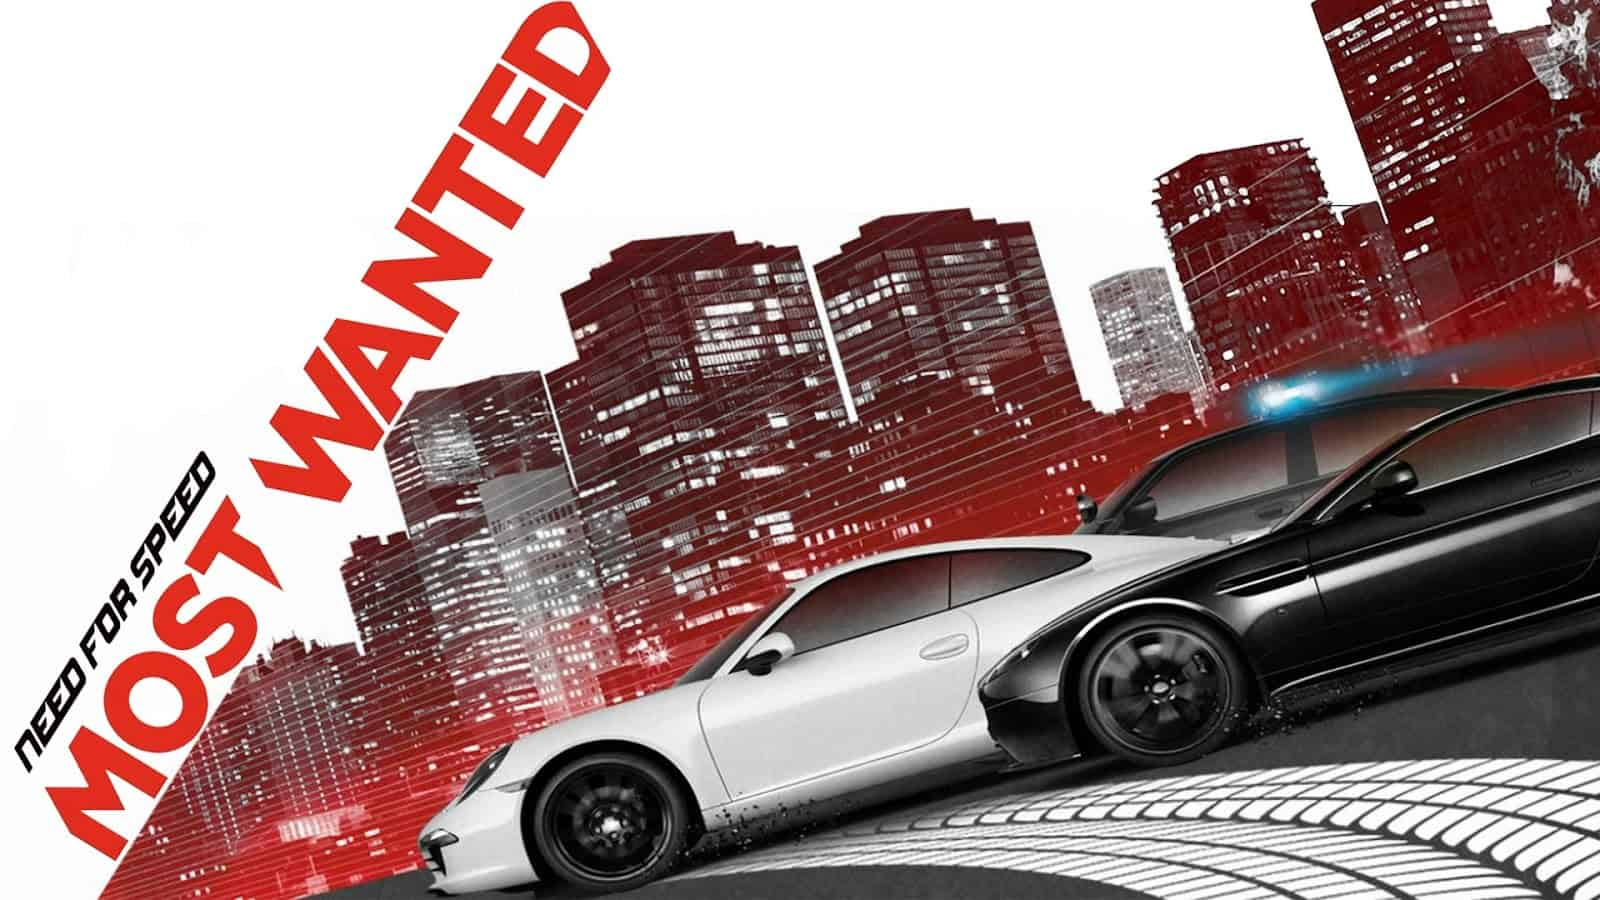 PC Need For Speed: Most Wanted 2012 SaveGame 100% - Save